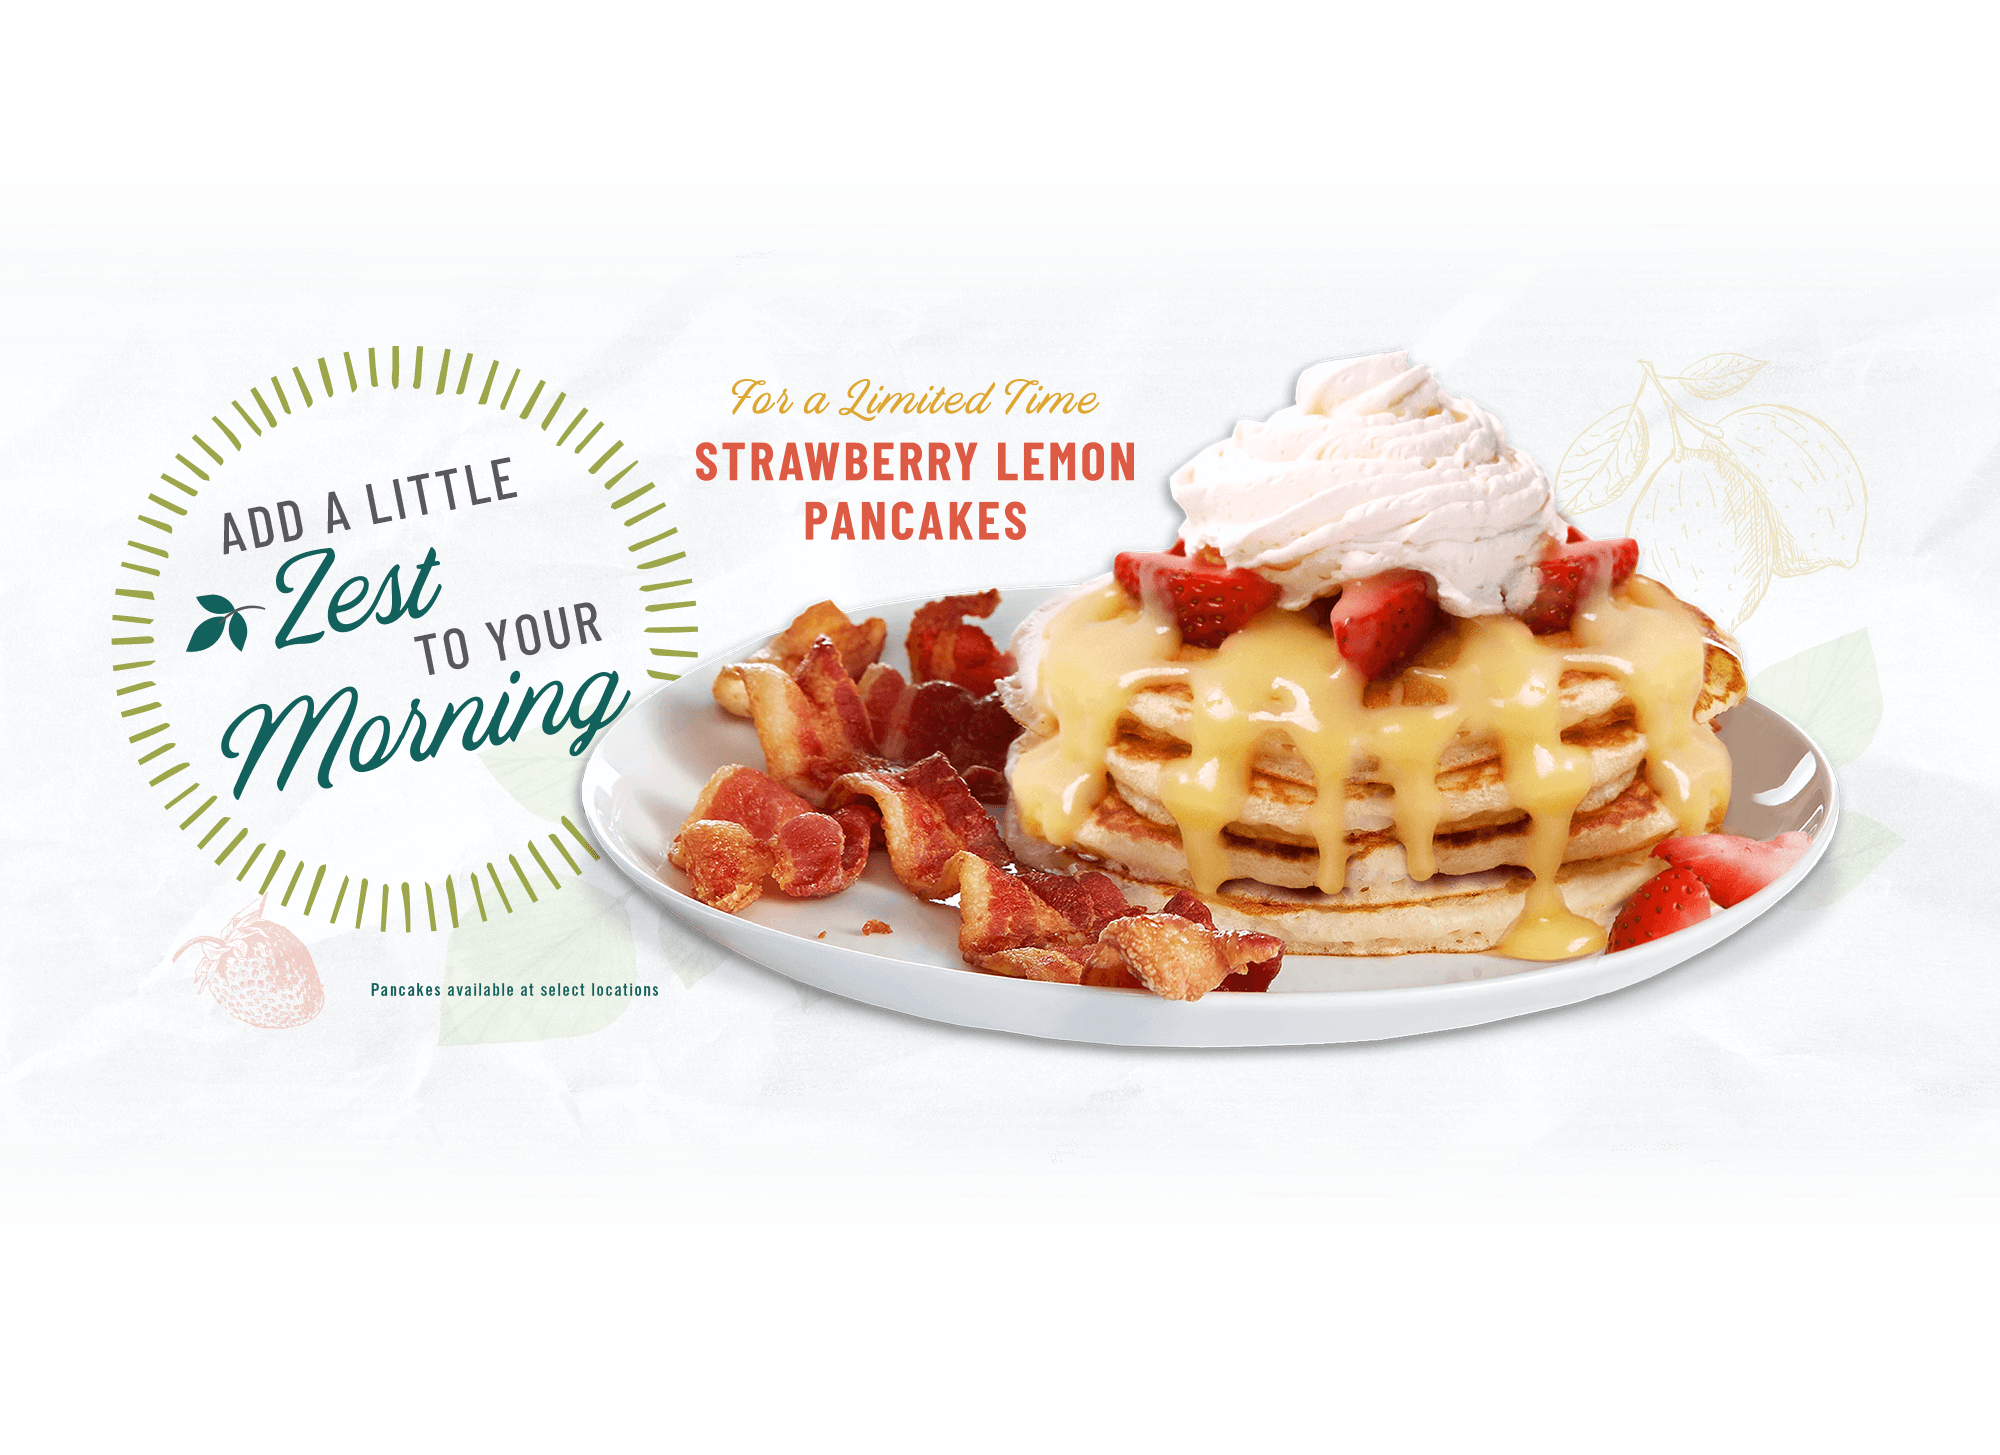 For a limited time - Strawberry Lemon Pancakes